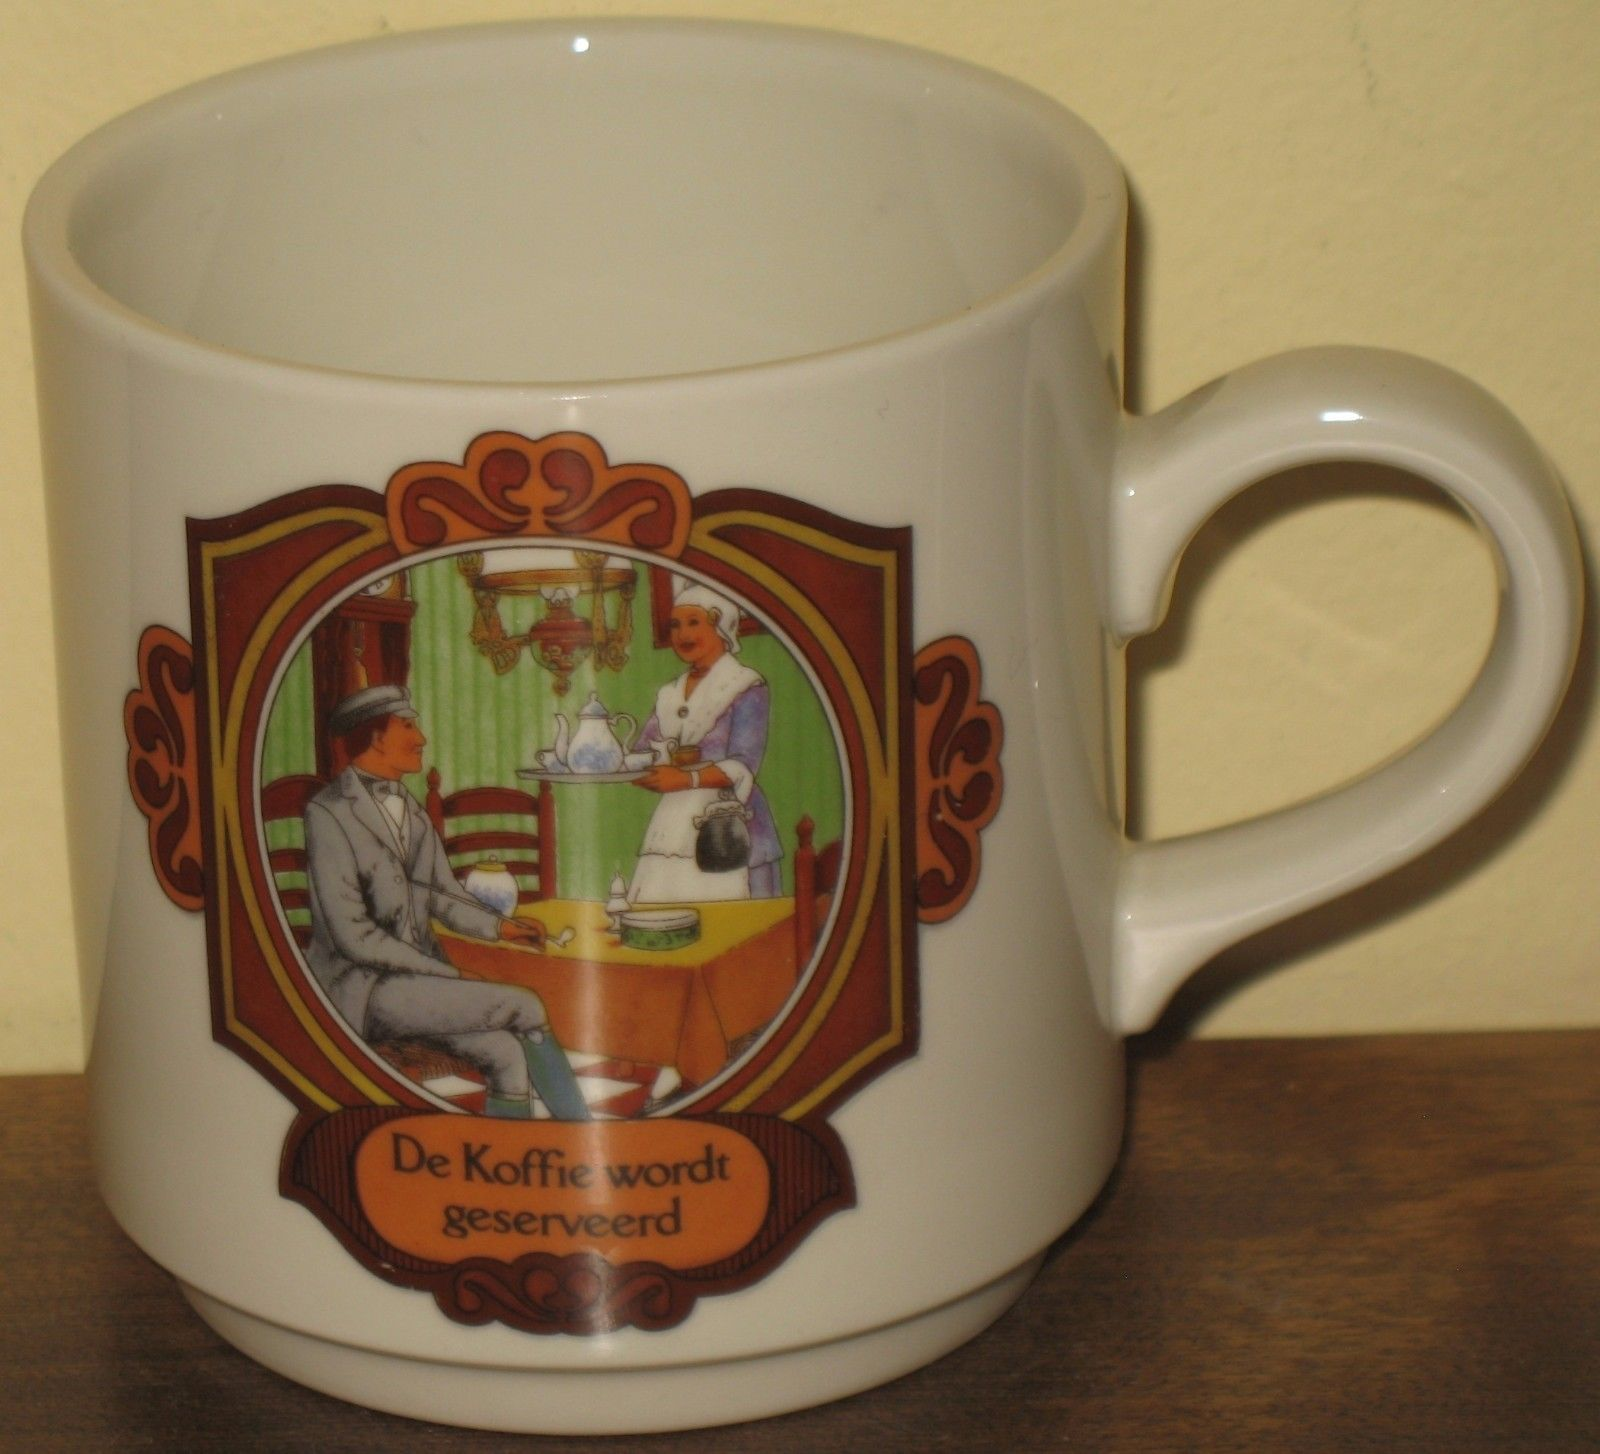 Villeroy Boch Coffee Is Served Mug Cup De Koffie Wordt Geserveerd Luxembourg Coffeemug